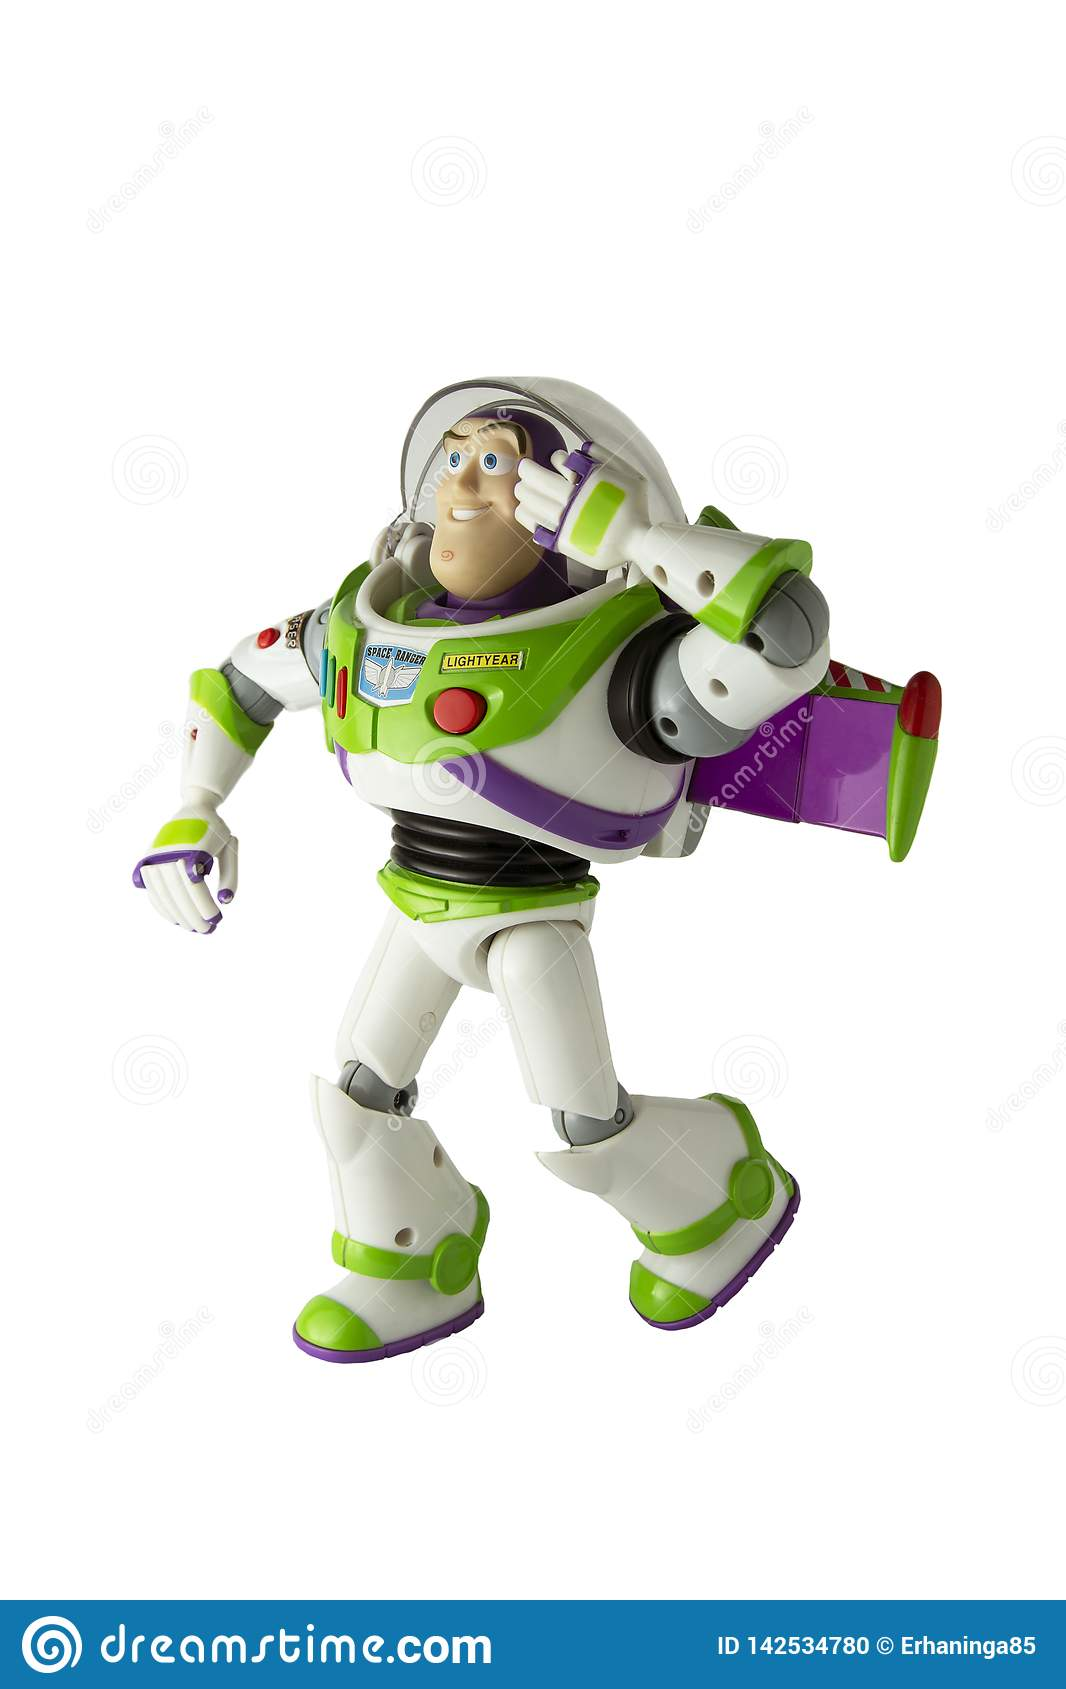 Corby, U K, March 20, 2019: Buzz Lightyear Robot Toy Character Form